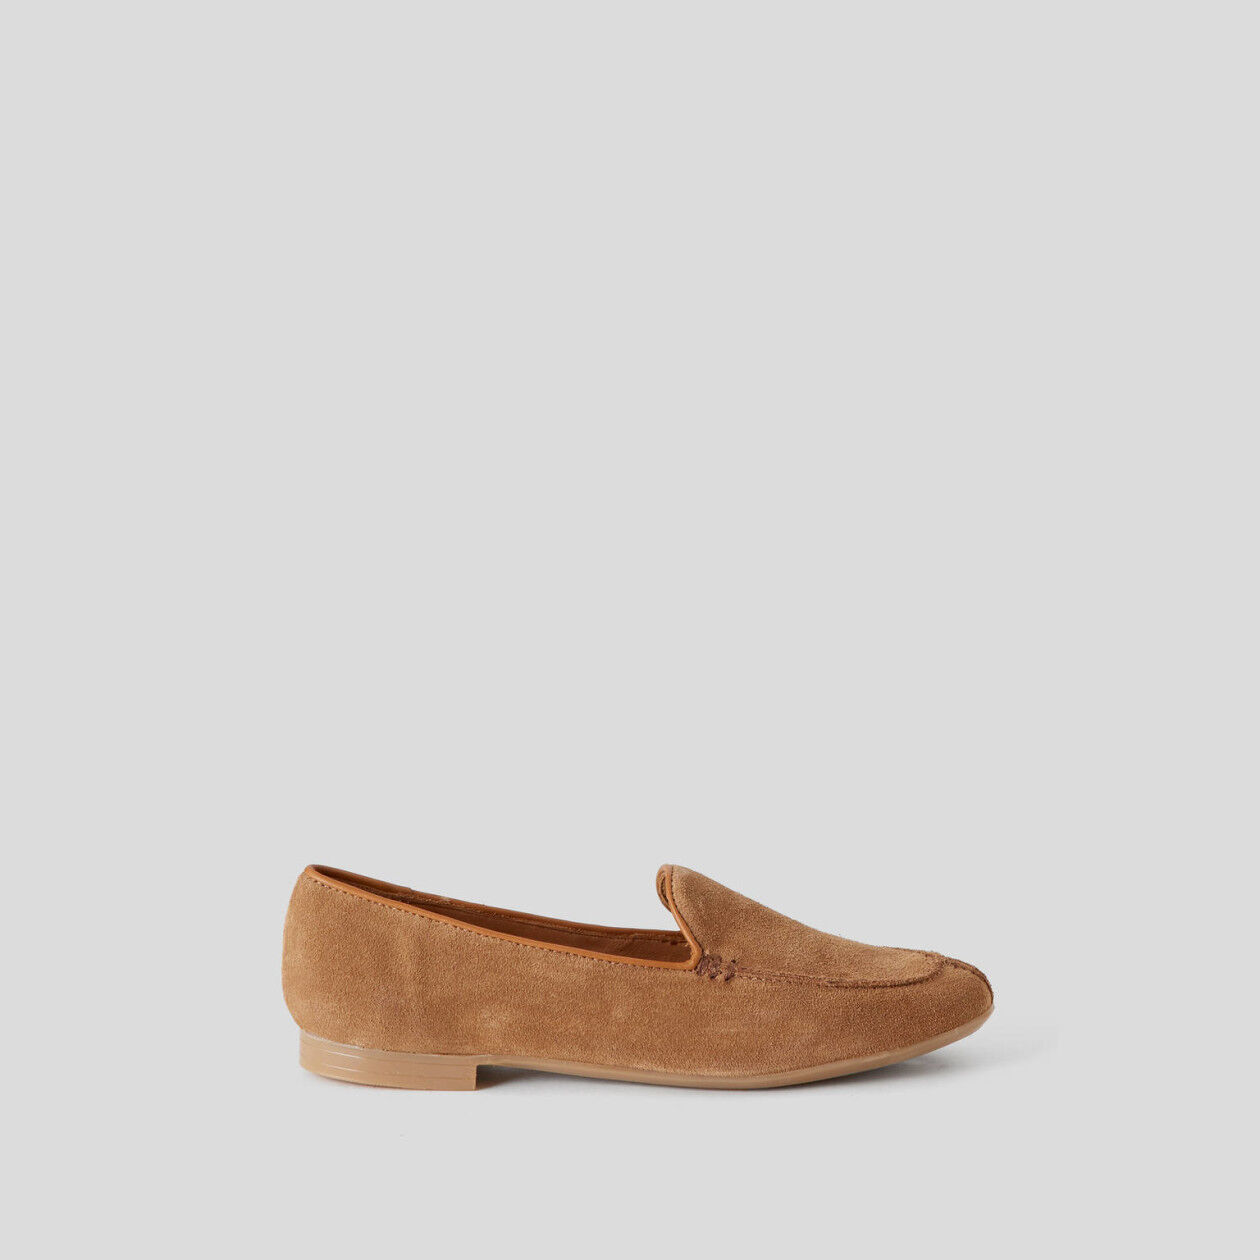 Chamois leather moccasins